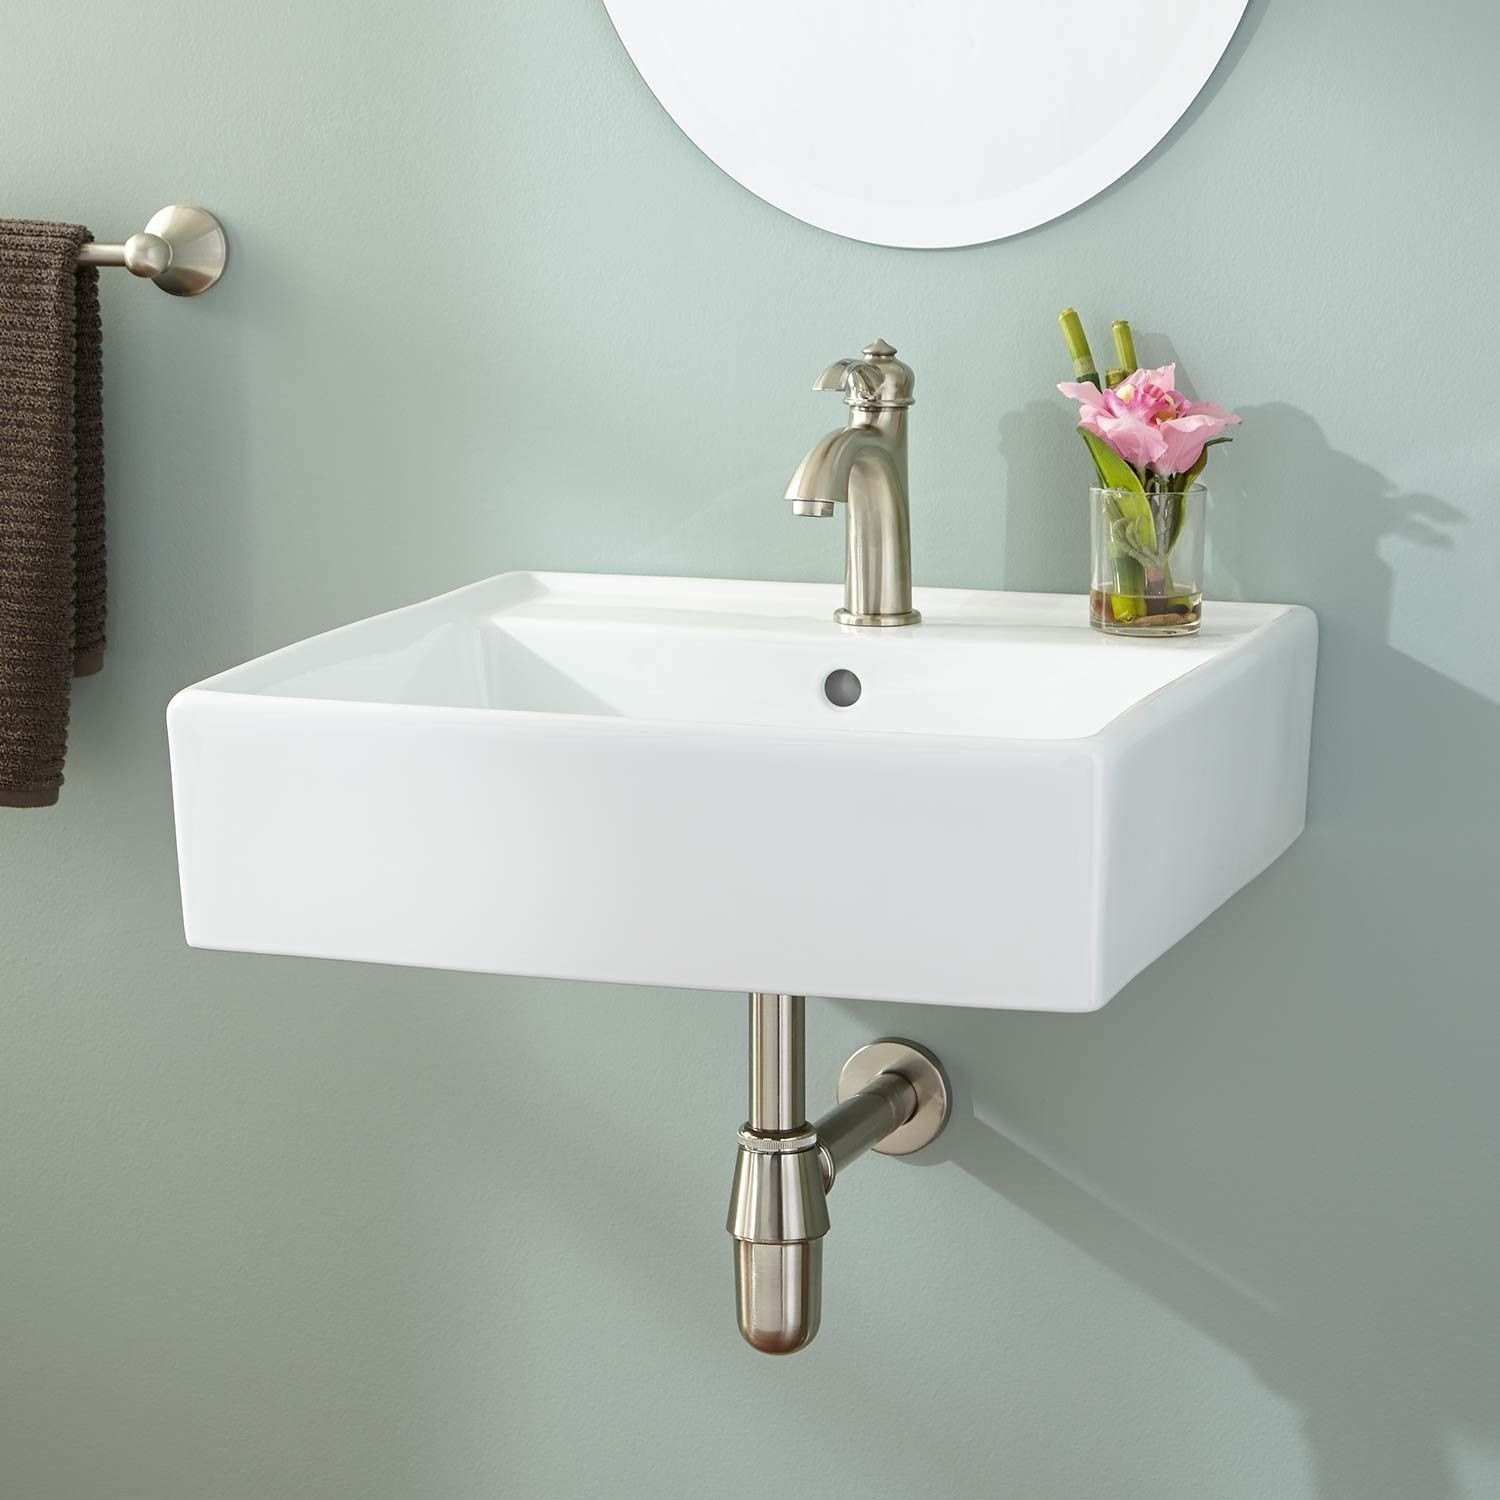 White Wall Decor for Bathroom Awesome Wall Decor Ideas for the